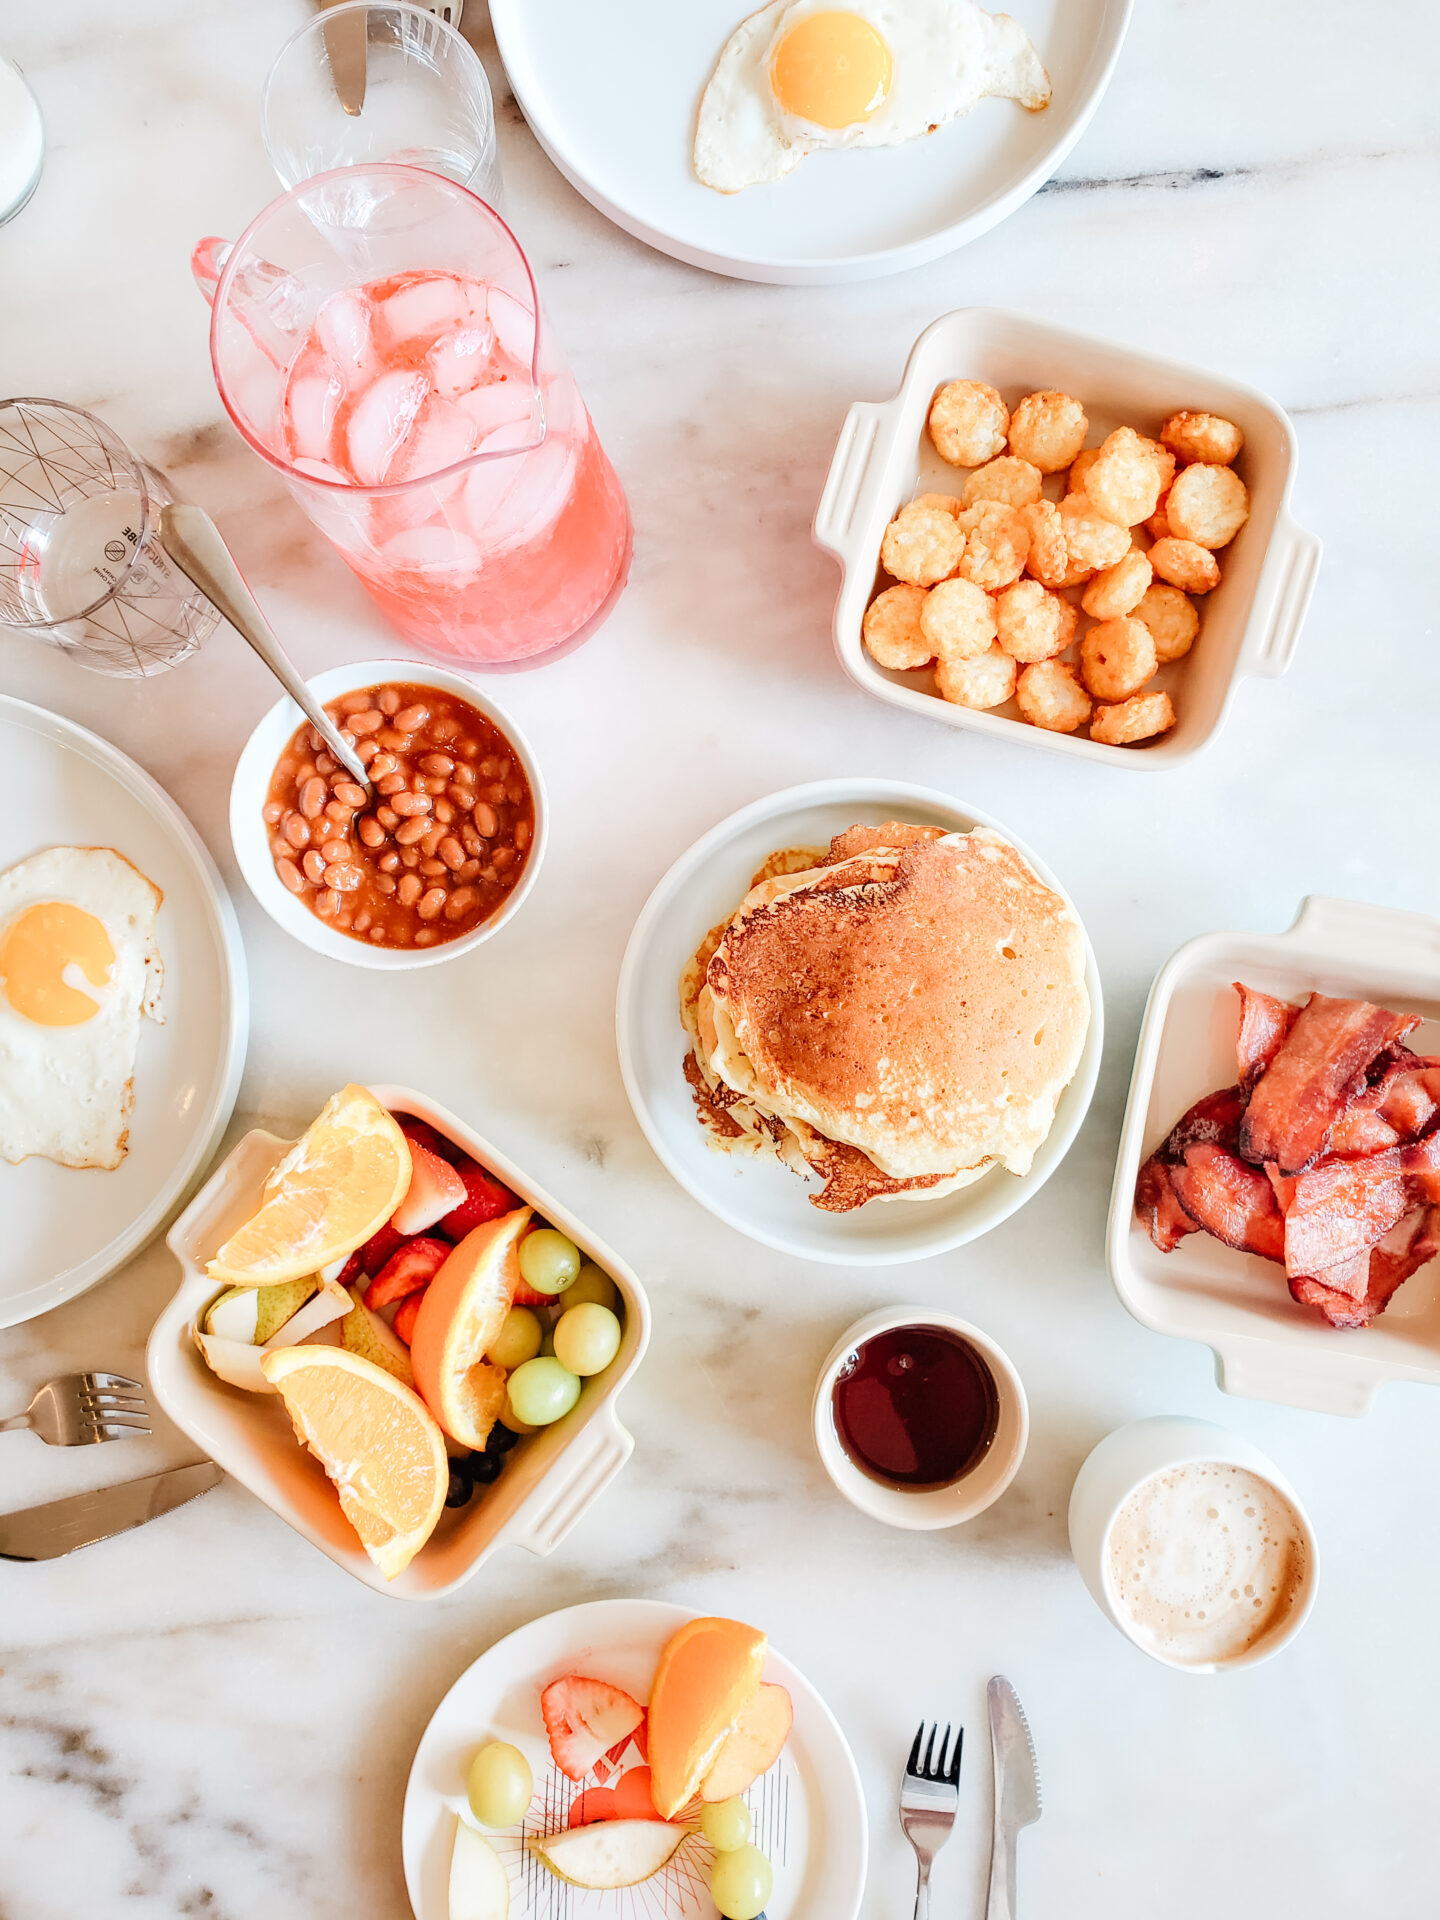 Where to find the best brunch places in Montreal